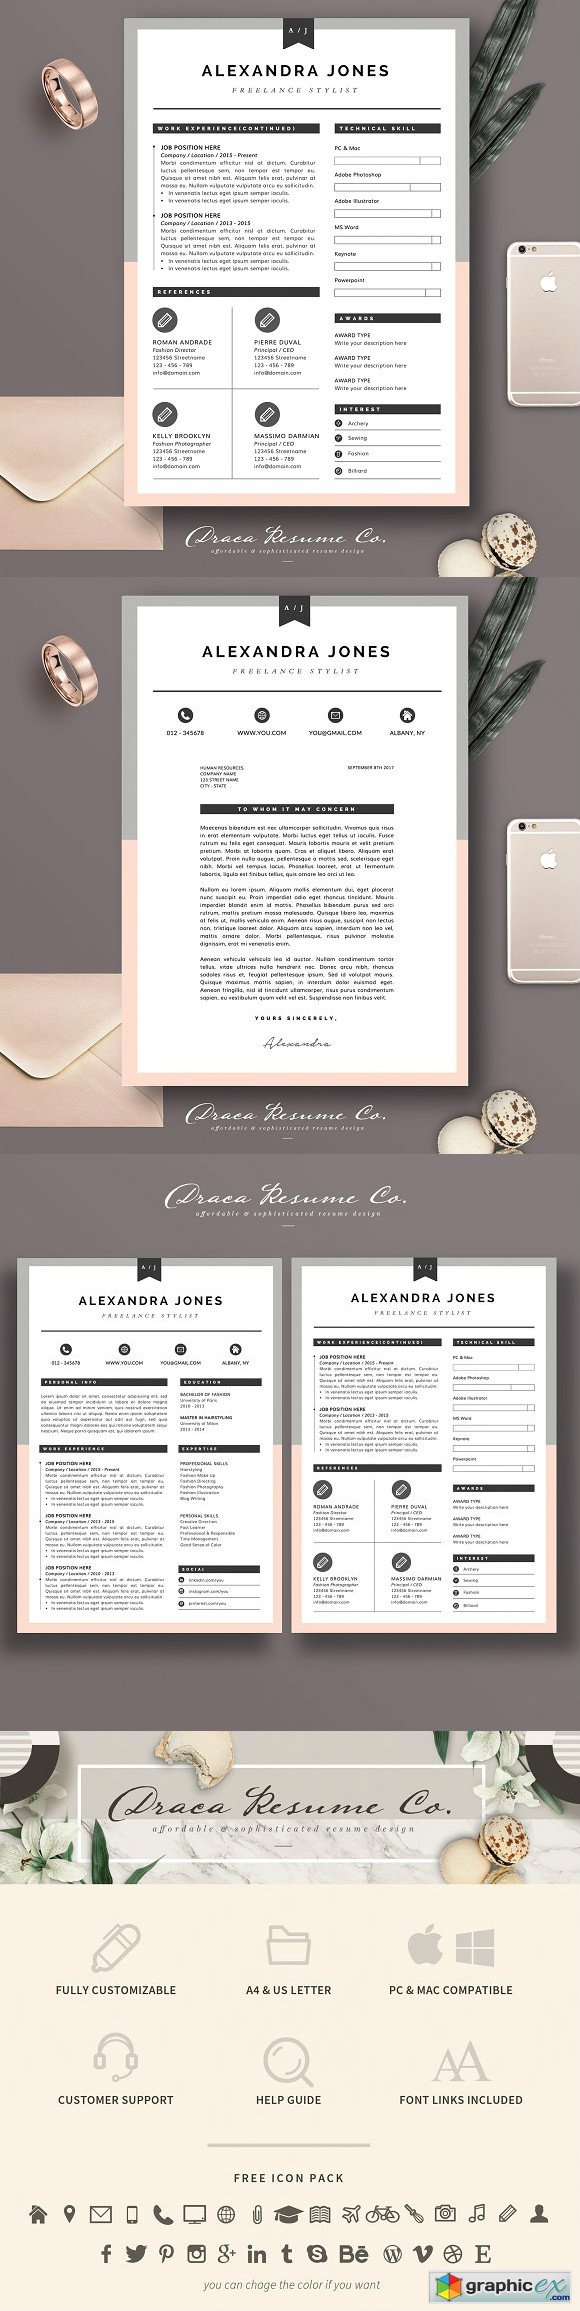 Resume Template 3 page pack AJ